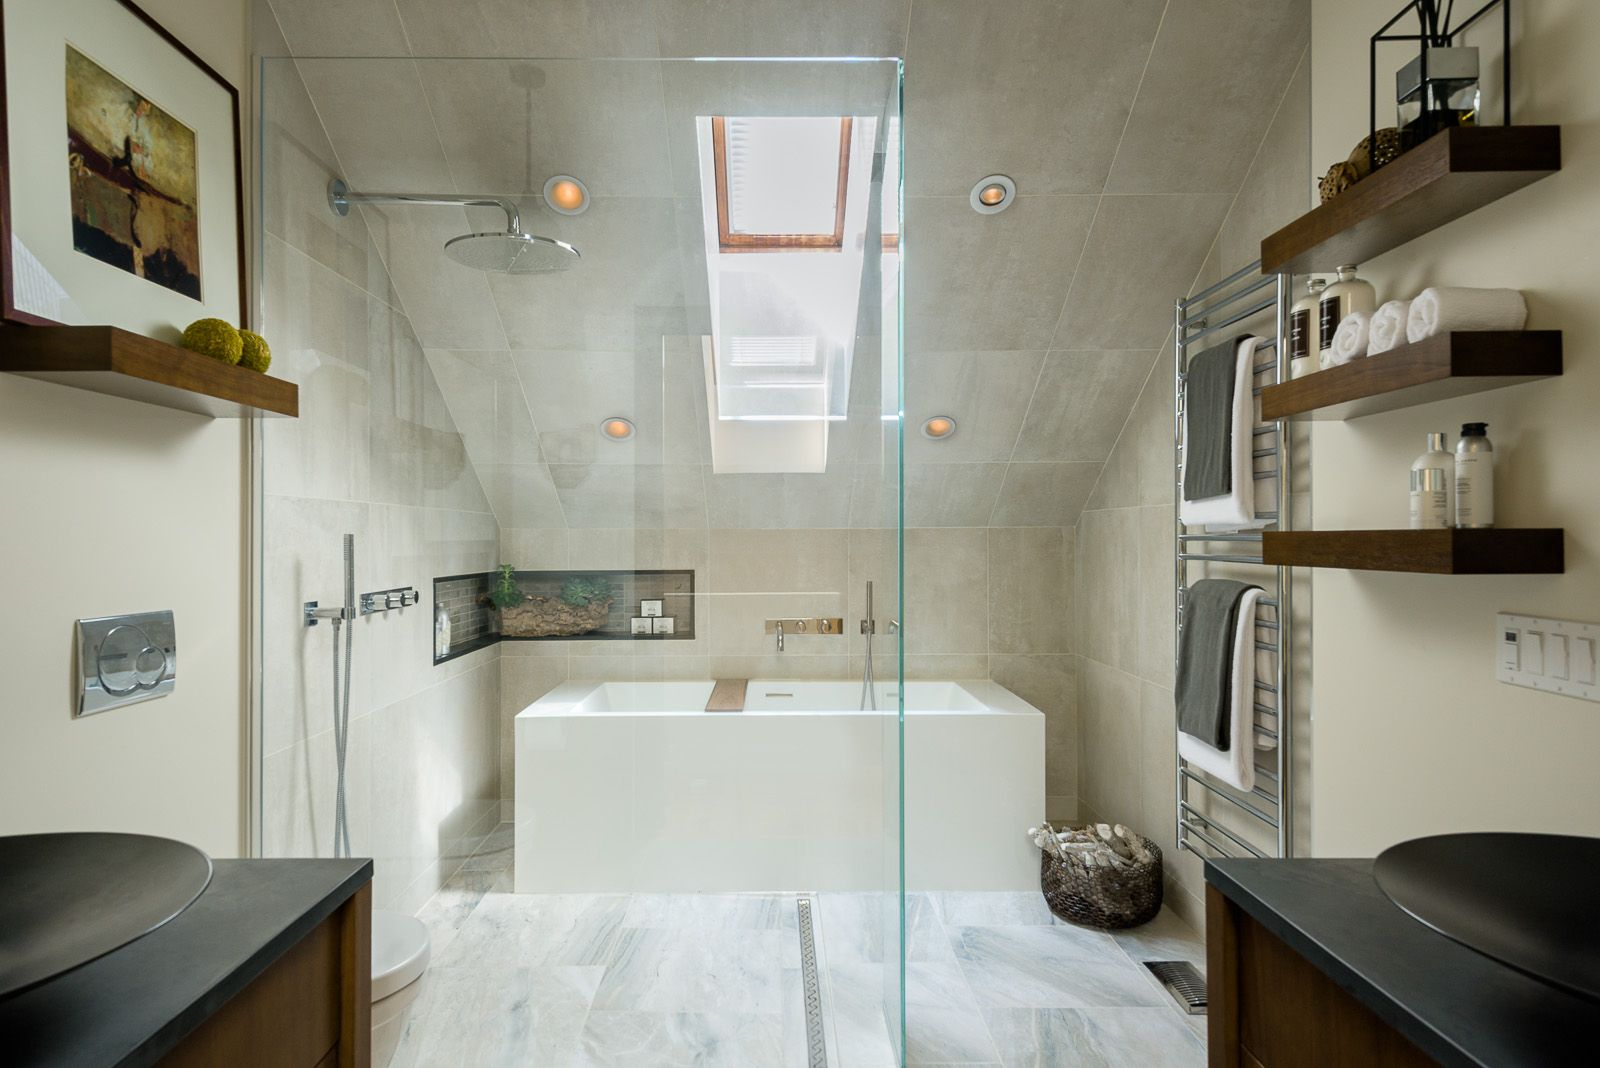 Such a stunning and slick bathroom design